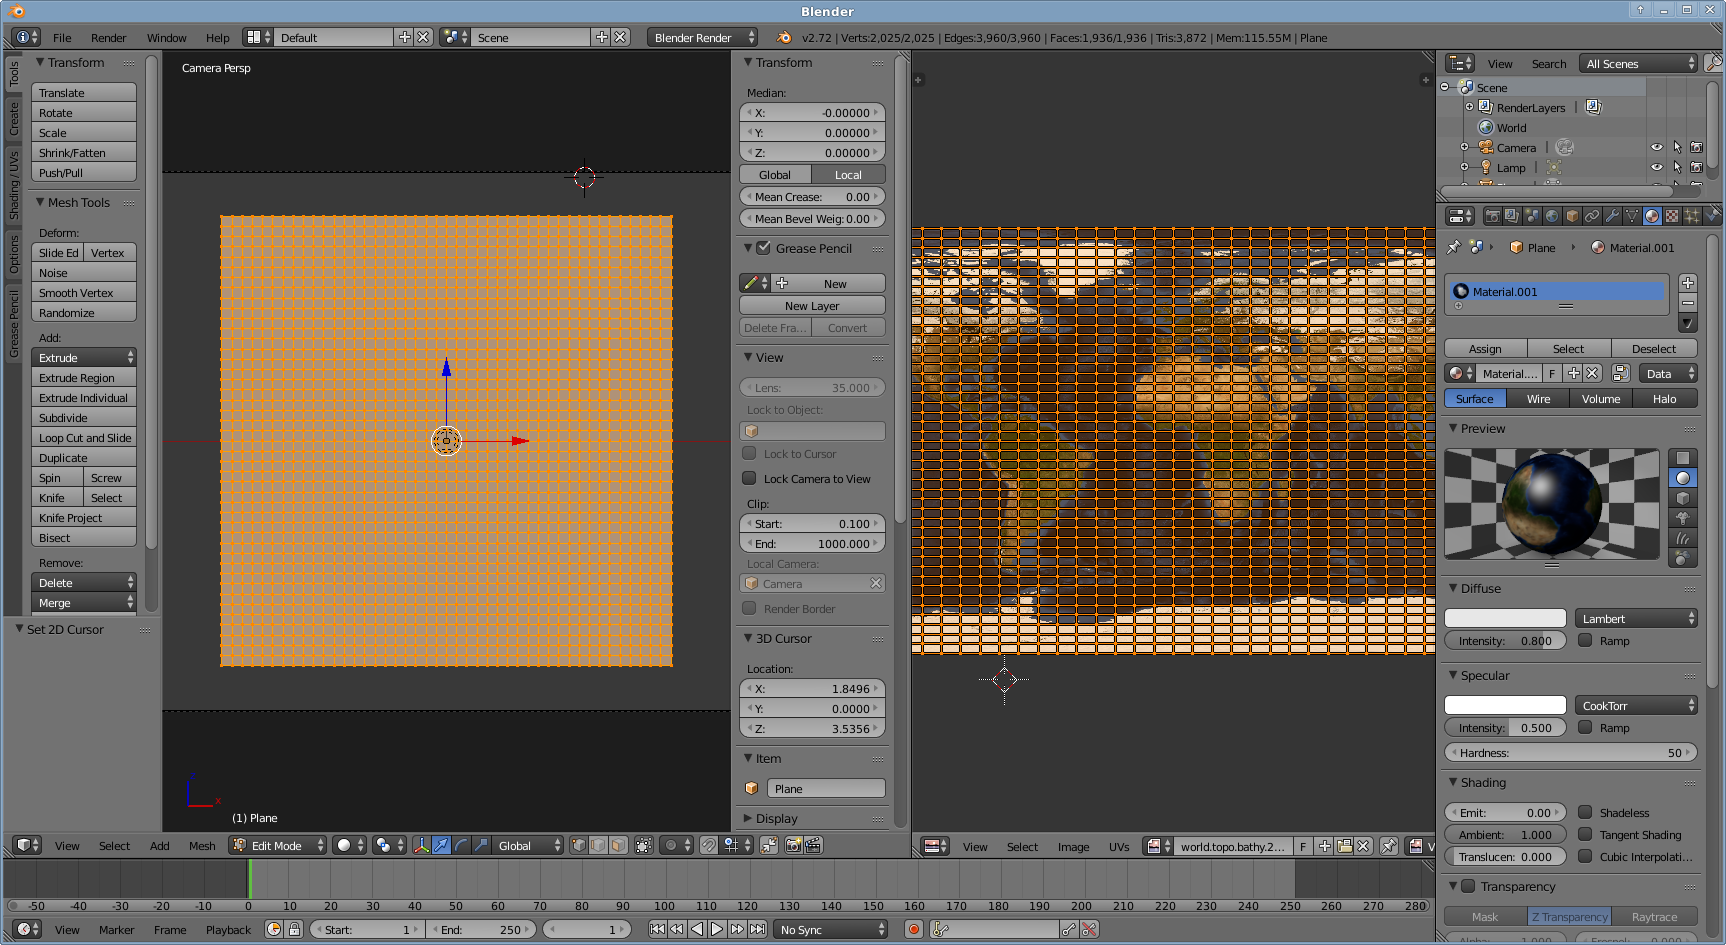 Morphing a map to a sphere in Blender